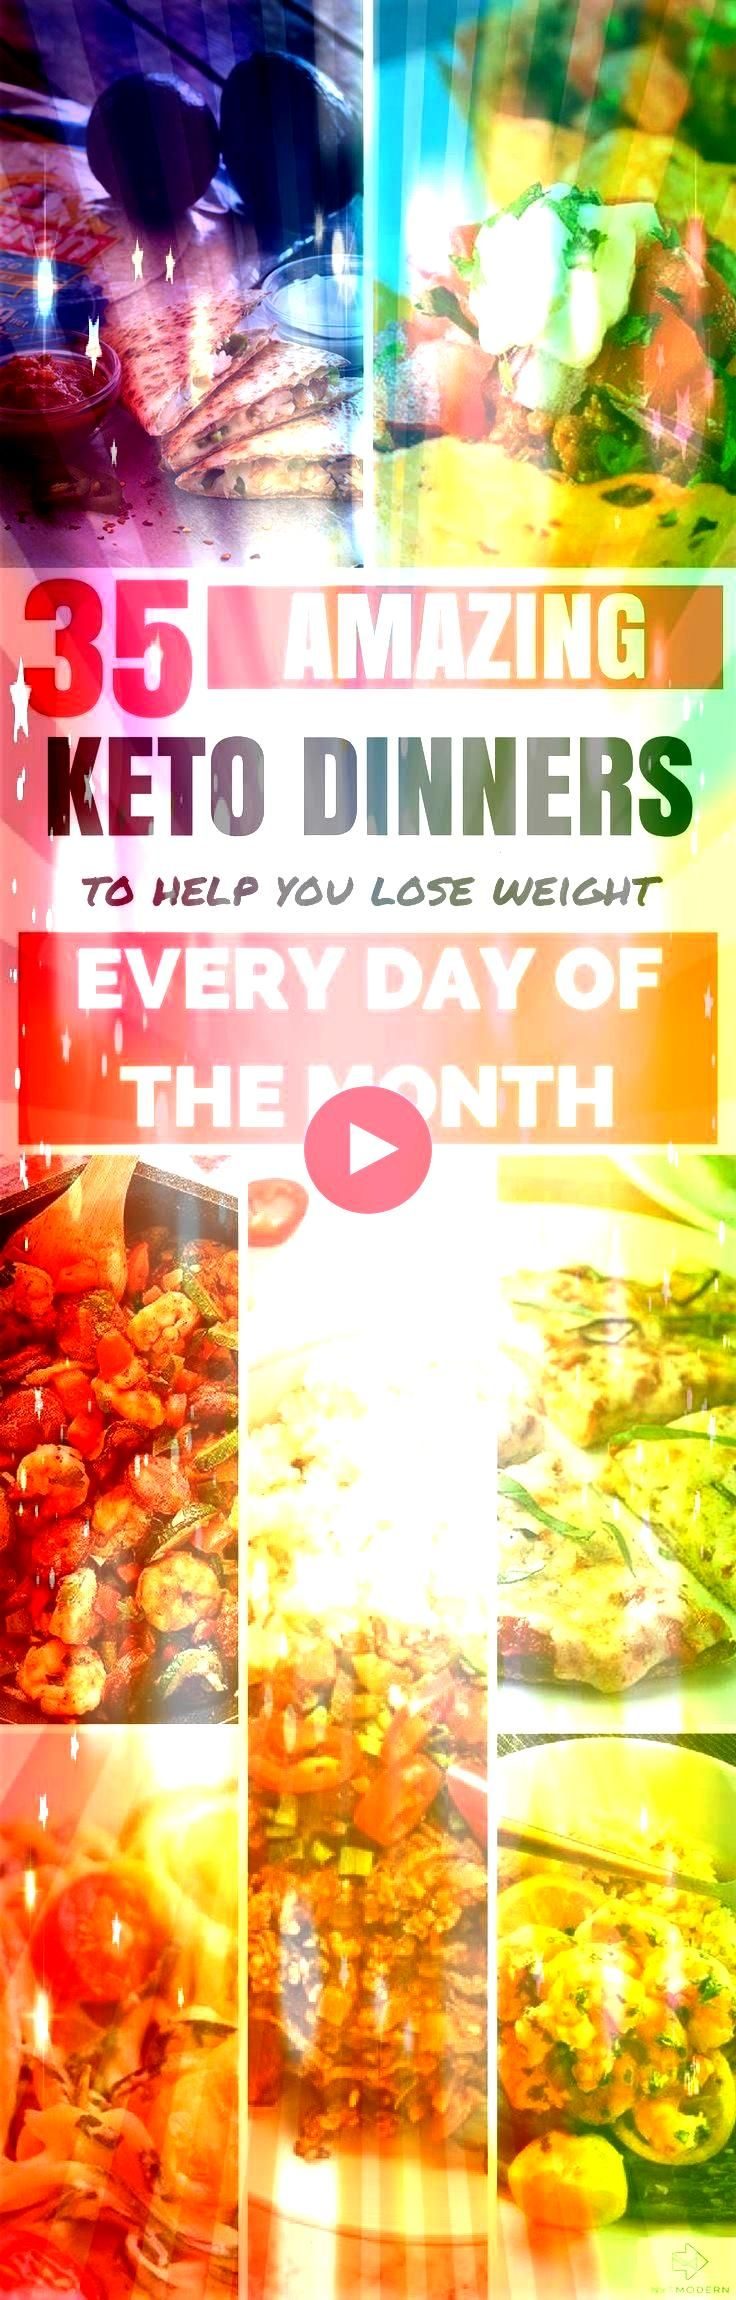 Dinners for Every Day of the Month  Beyond 35 Ketogenic Dinners for Every Day of the Month  Beyond  Raw zucchini pasta salad with vegan sunflower cheese sauce Easy to mak...